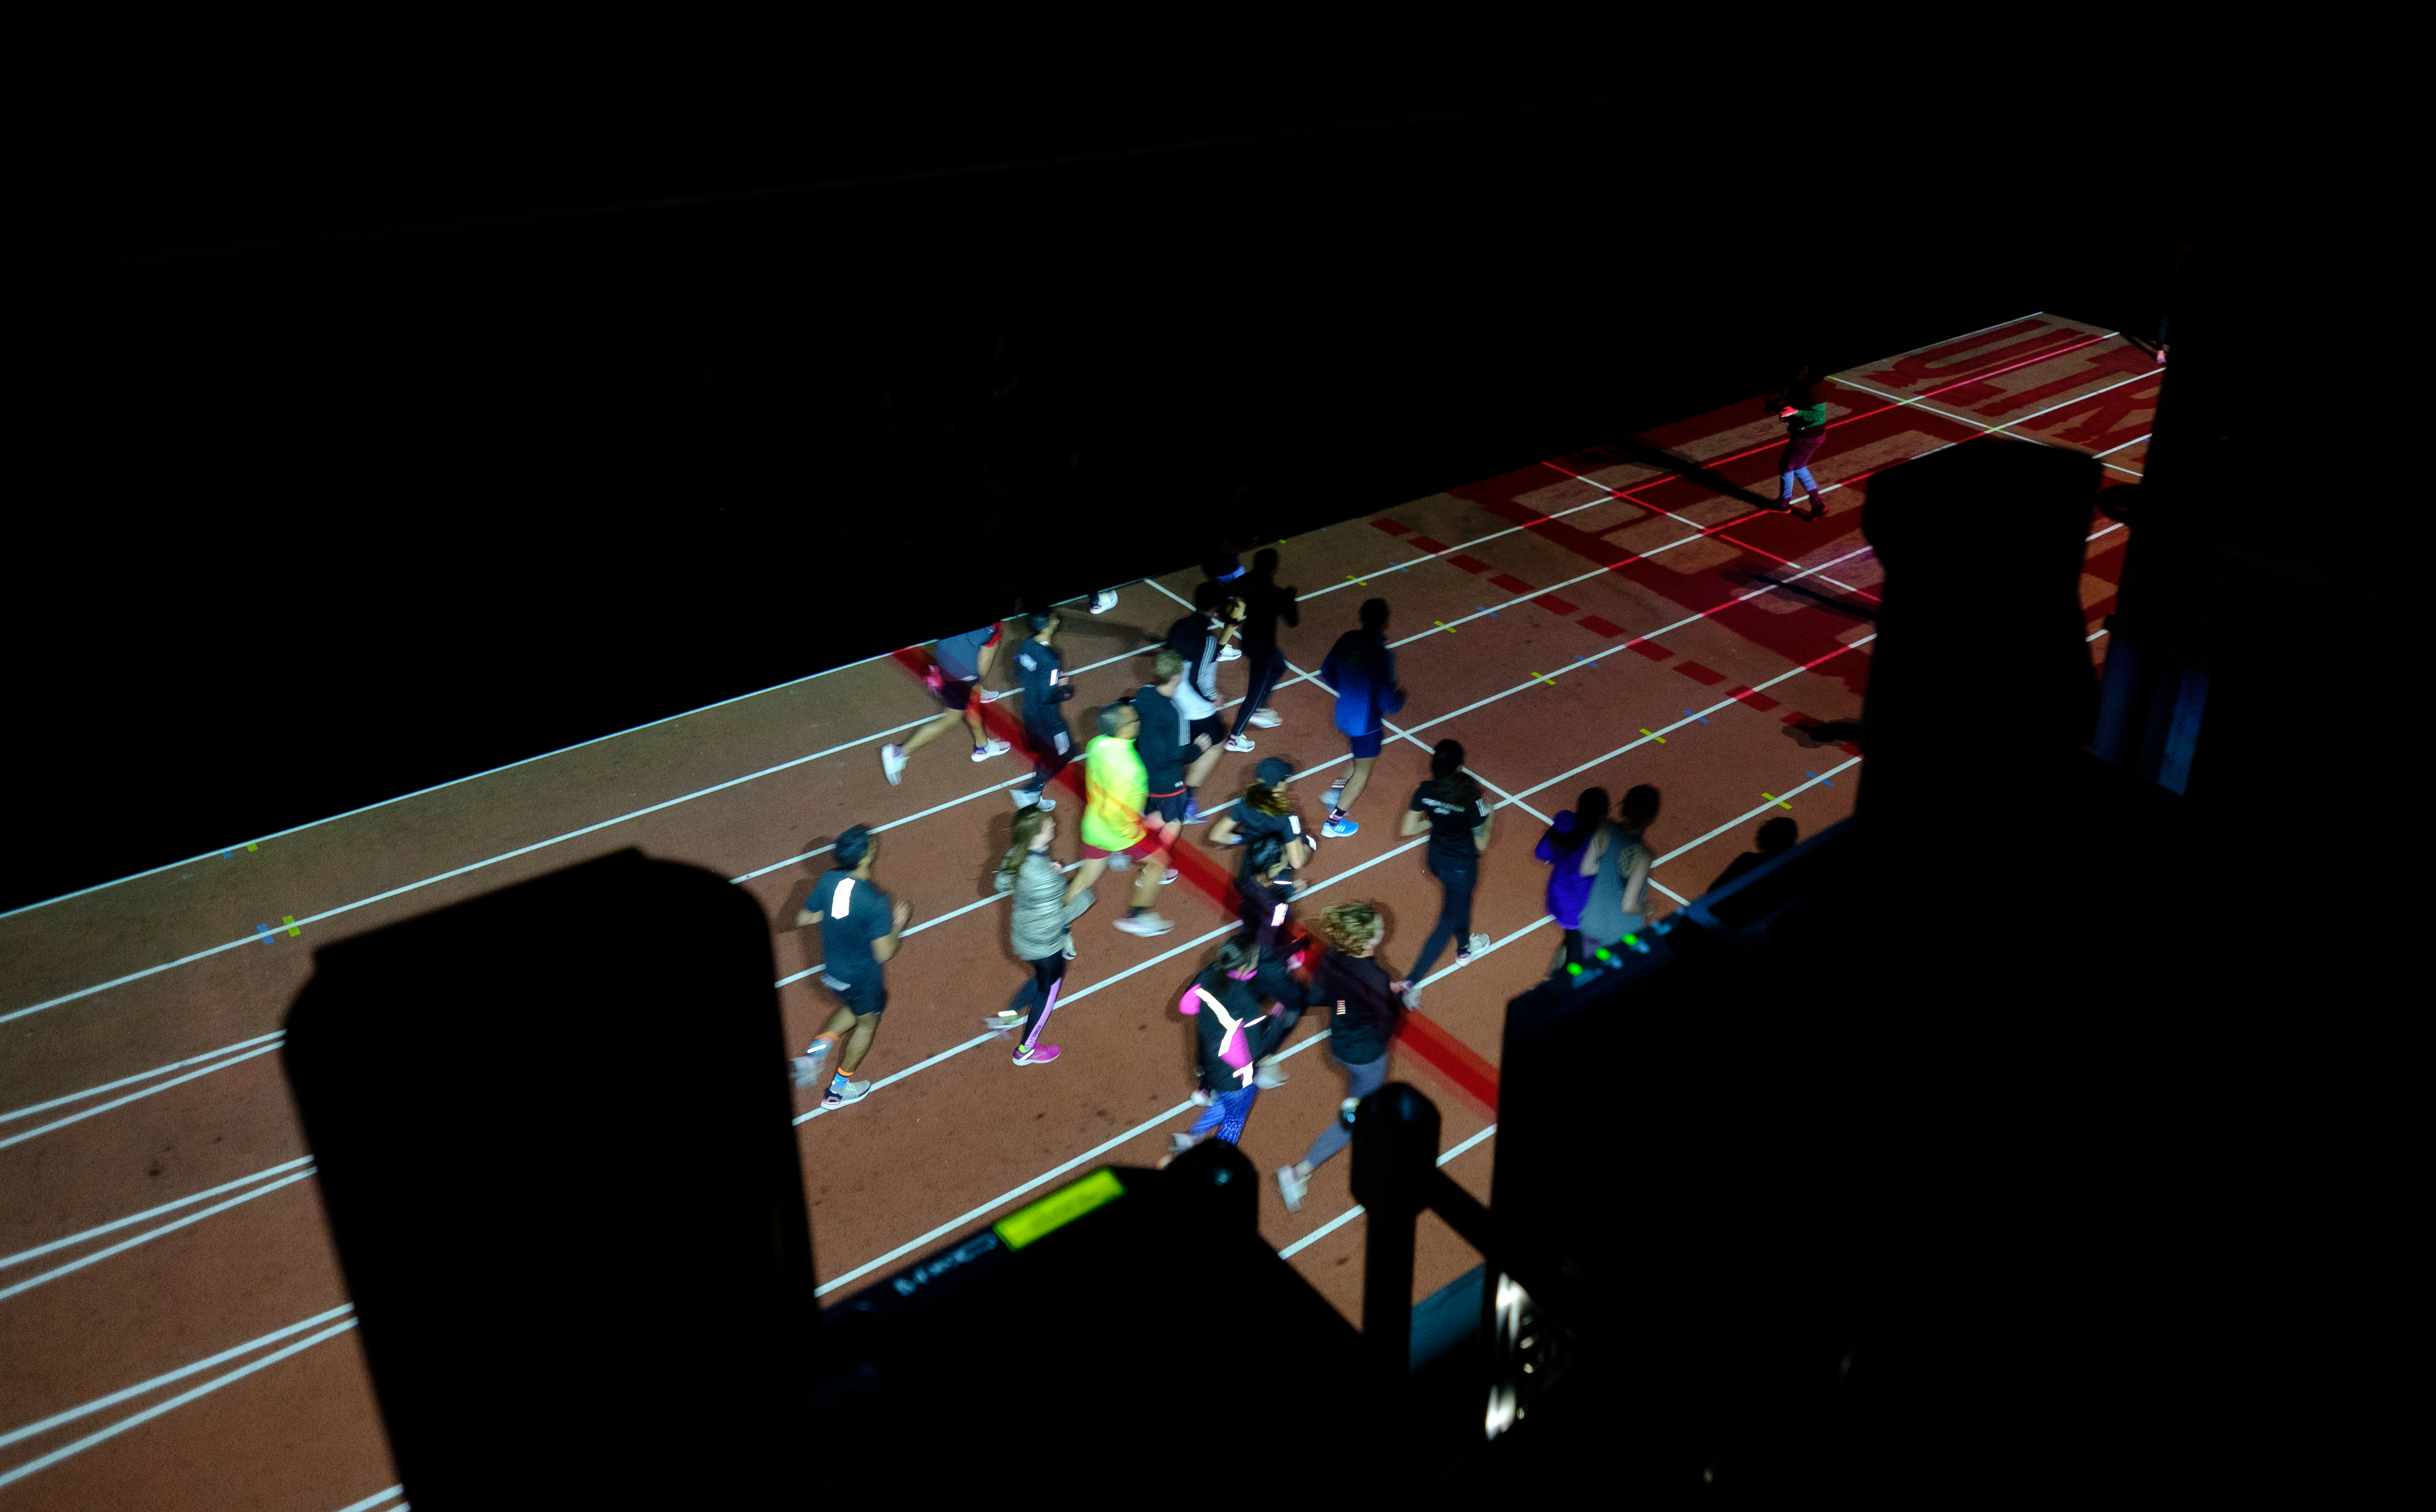 Event Projection: Olympic Park Running Track Projection Mapping for Adidas